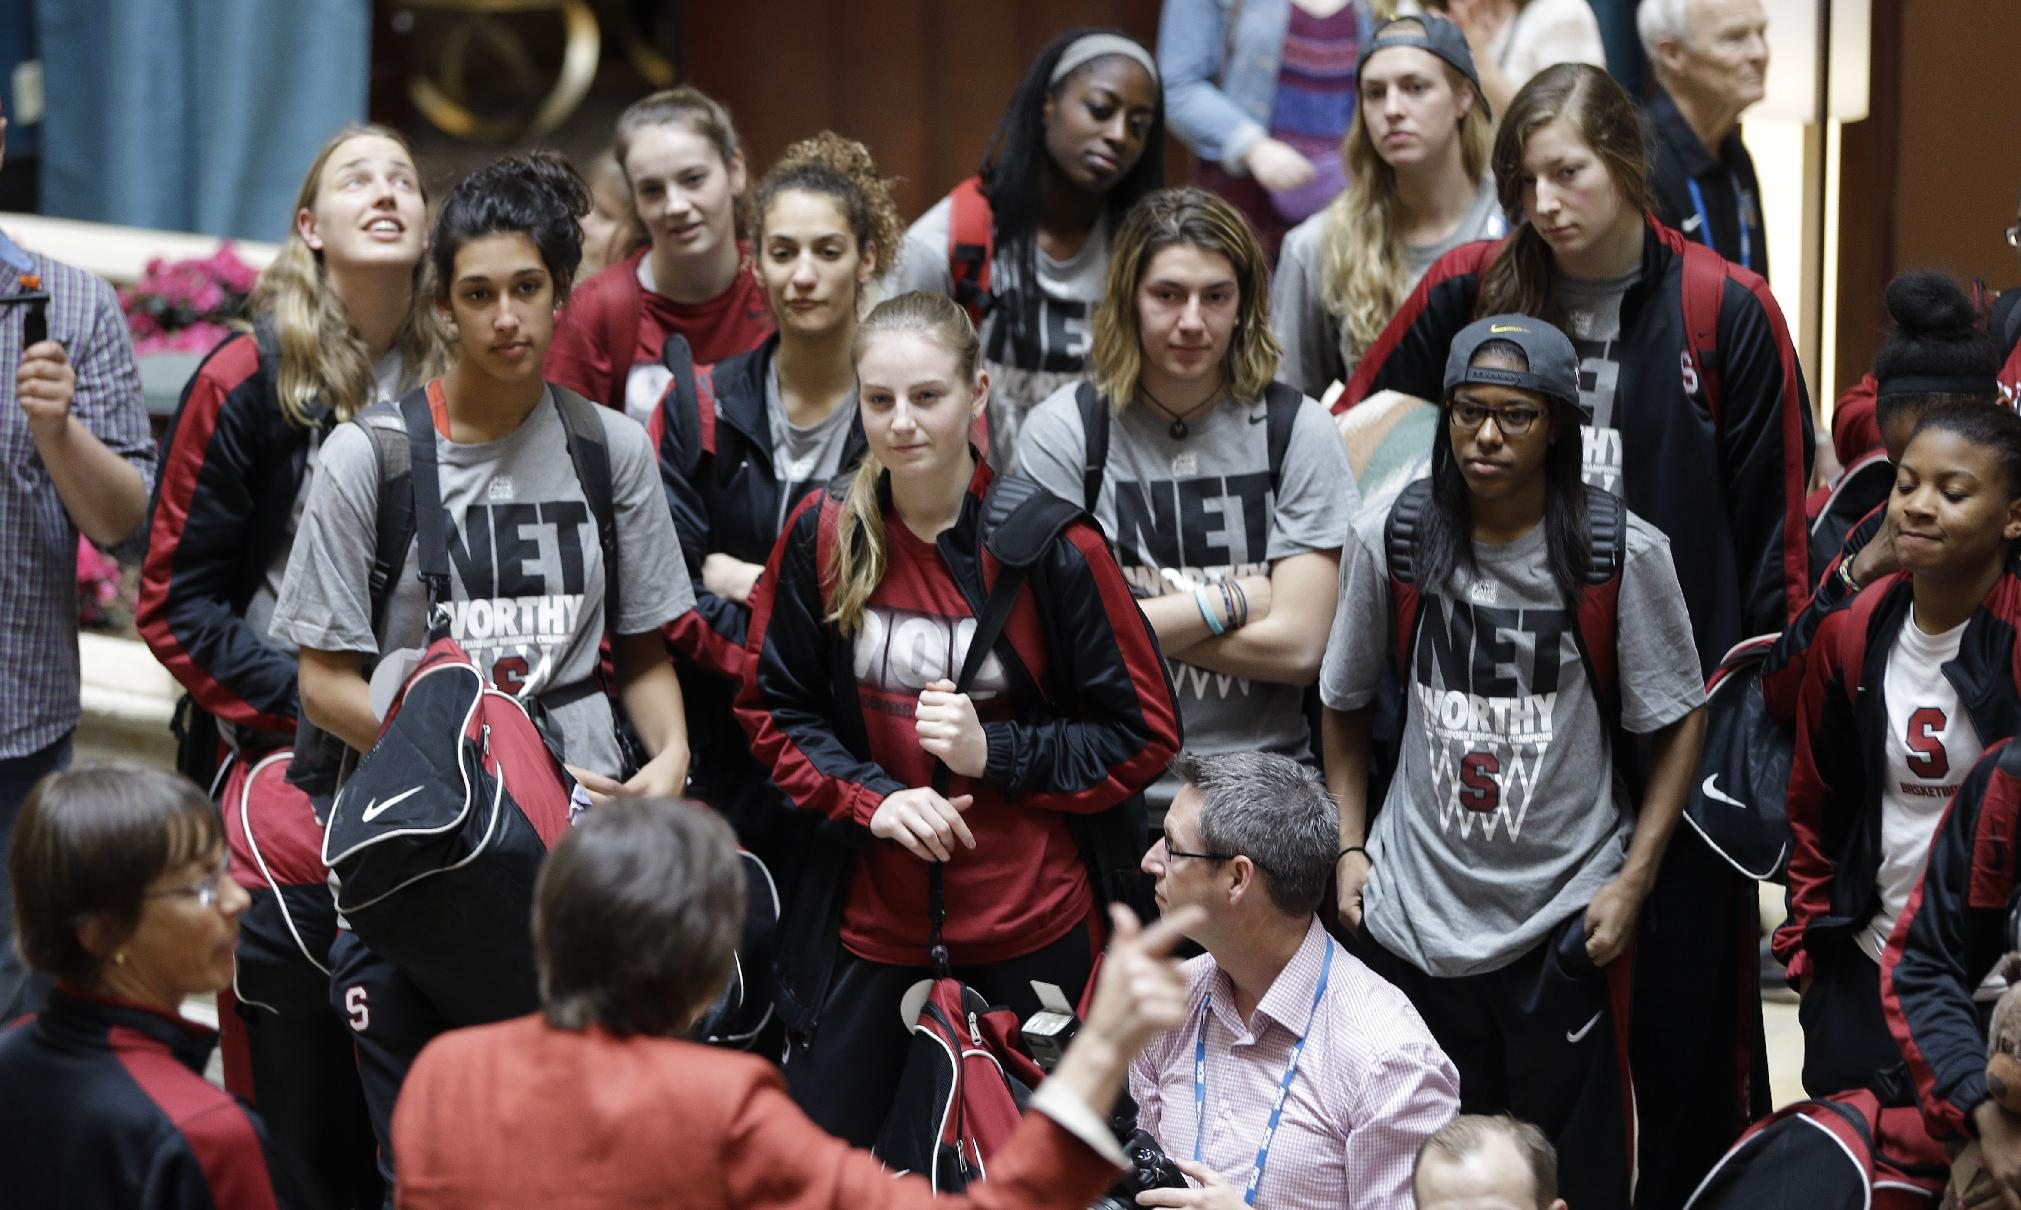 Stanford players listen as they are greeted upon their arrival at the team hotel Thursday, April 3, 2014, in Nashville, Tenn. Stanford is scheduled to play Connecticut in a semifinal of the NCAA women's college basketball Final Four on Sunday